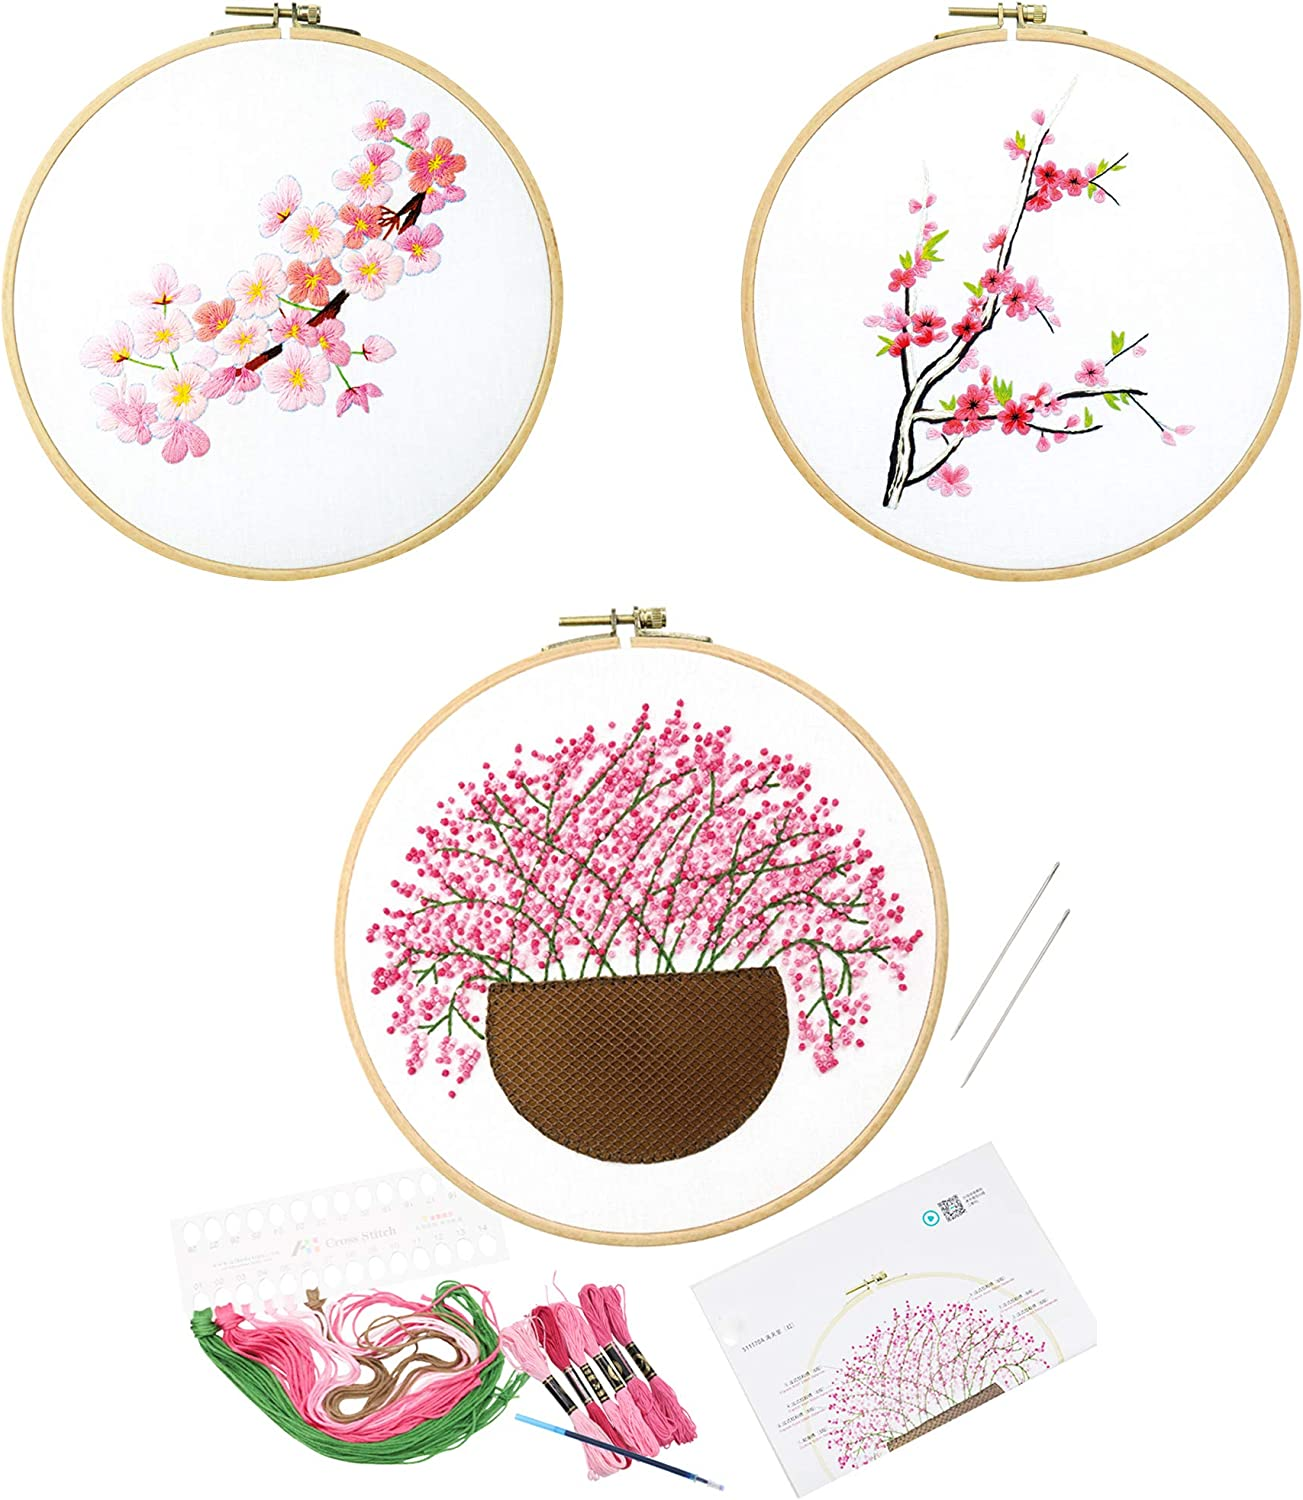 with 3 Embroidery Cloths with Plant Pattern 3 Pack Embroidery Starter Kit with Pattern and English Instructions 1 Embroidery Hoop with Threads and Needles Cross Stitch Set